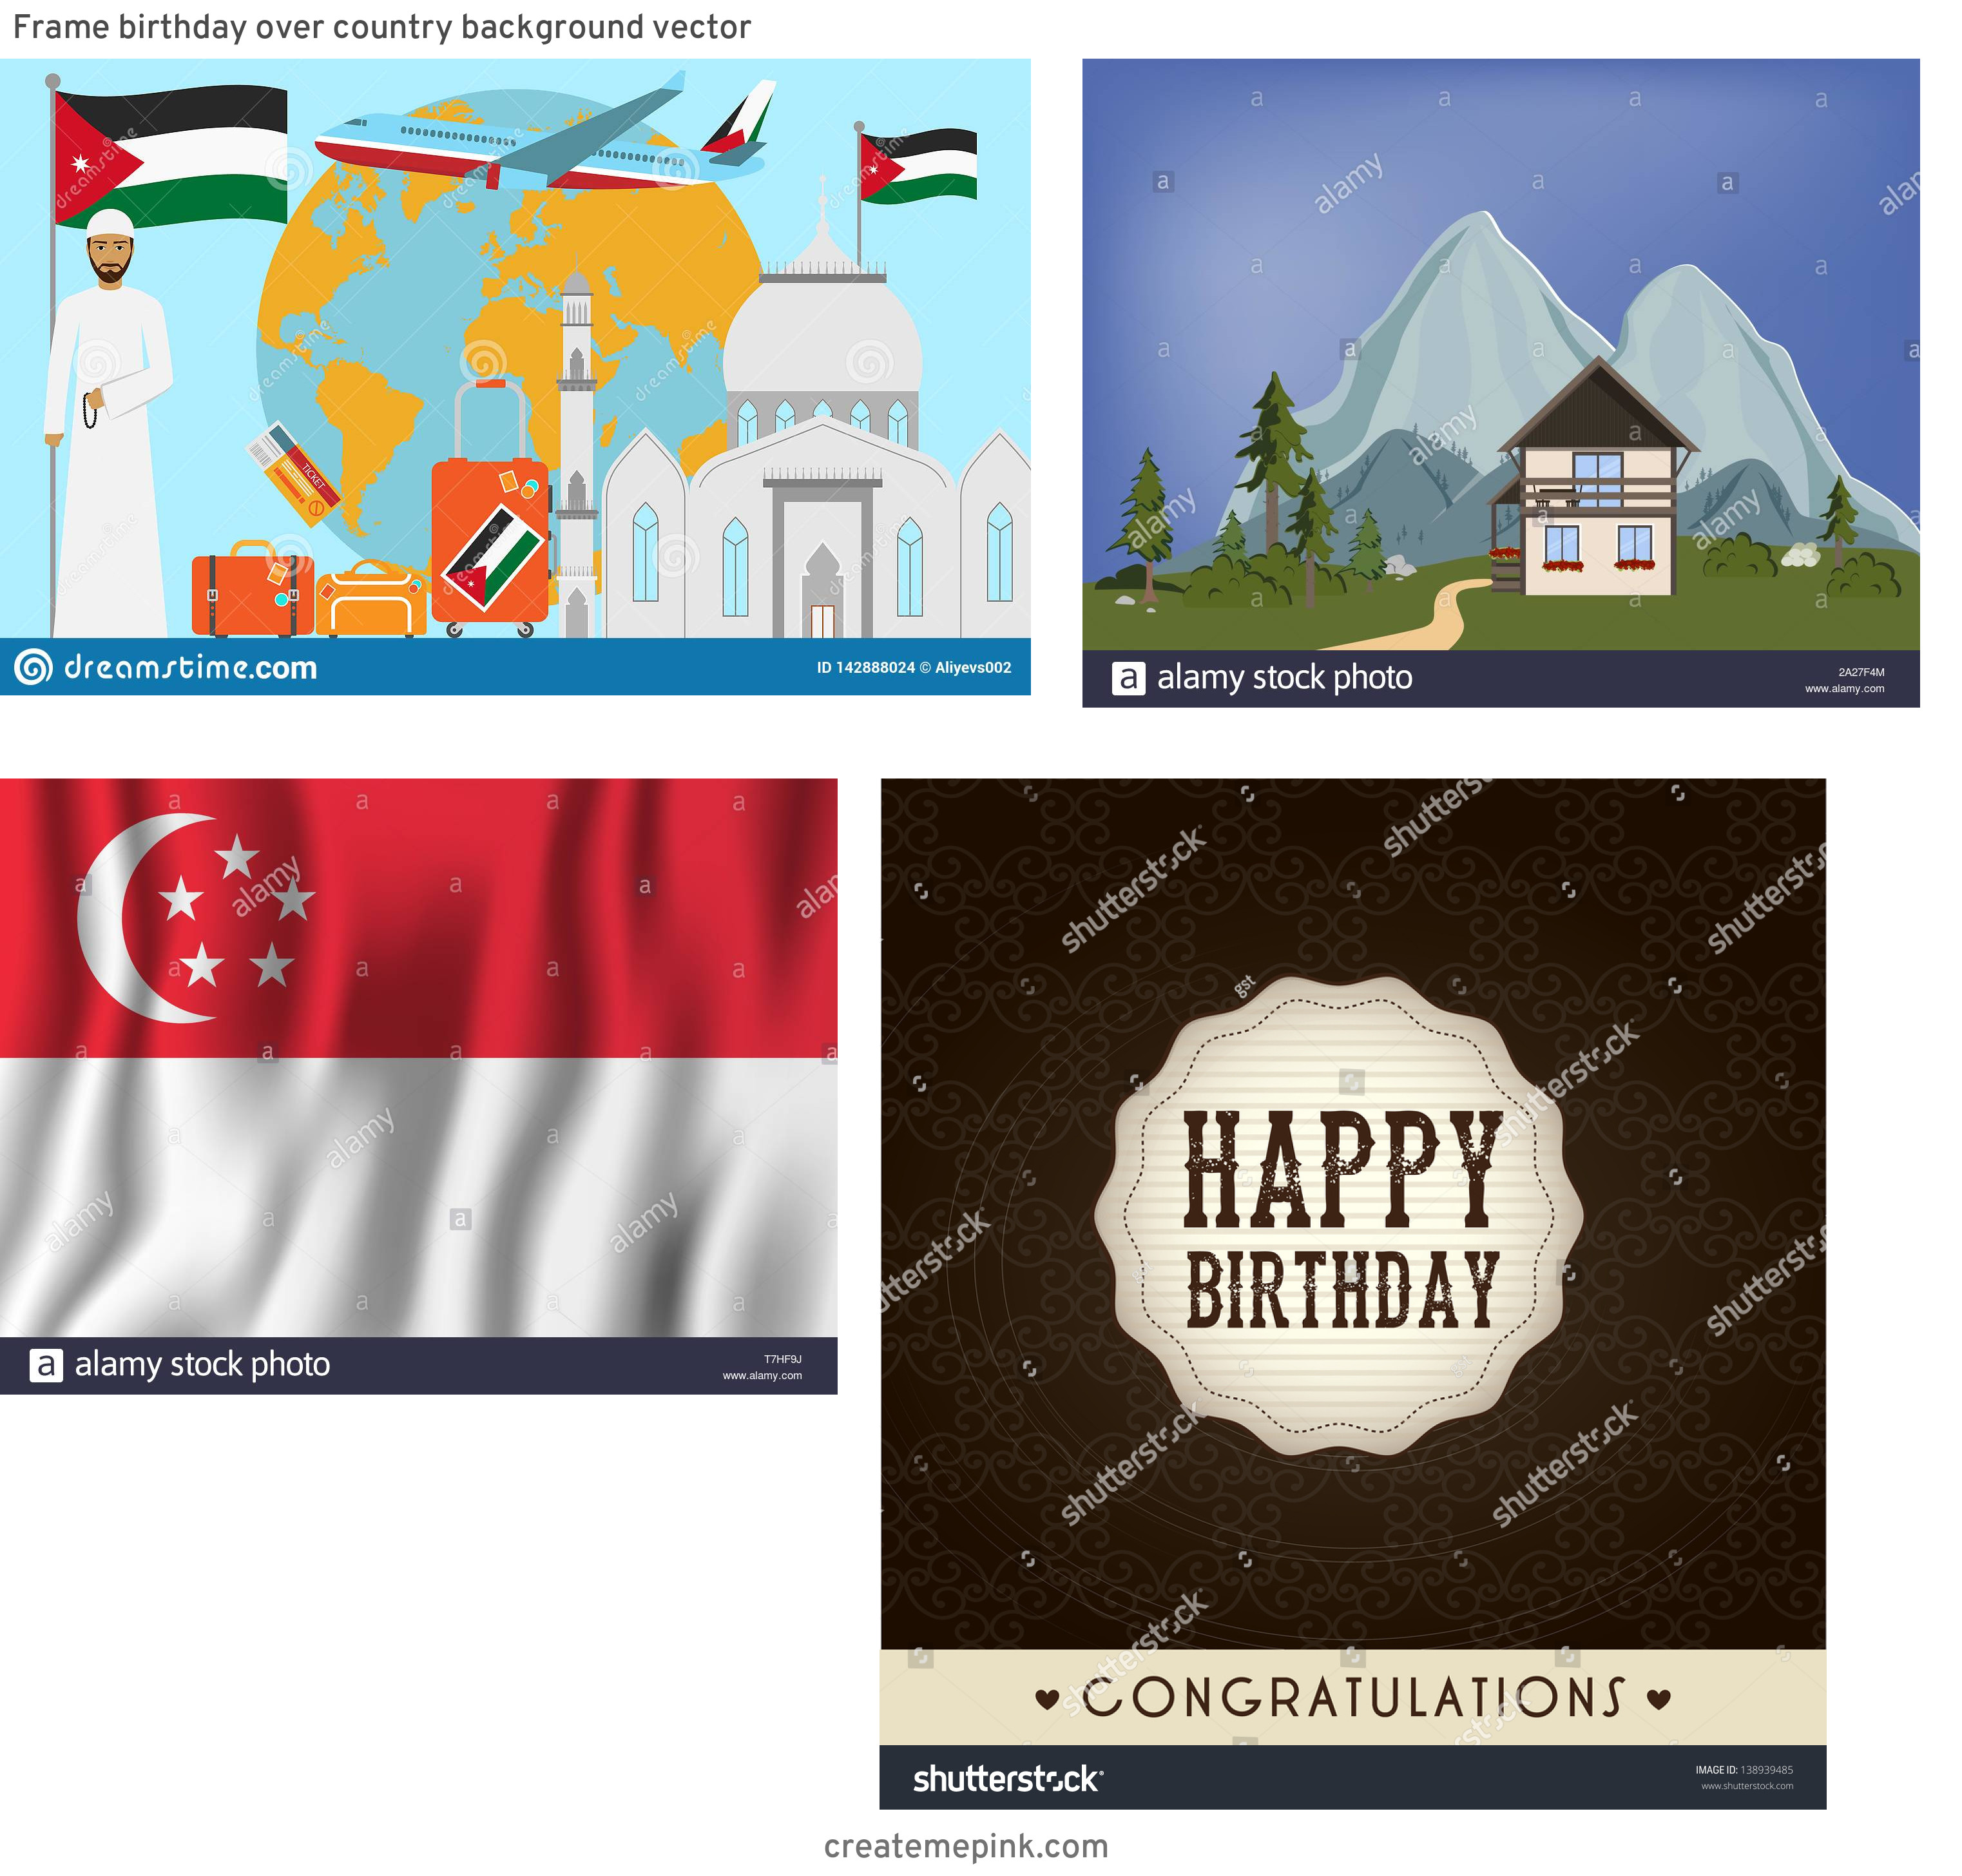 Country Background Vector: Frame Birthday Over Country Background Vector